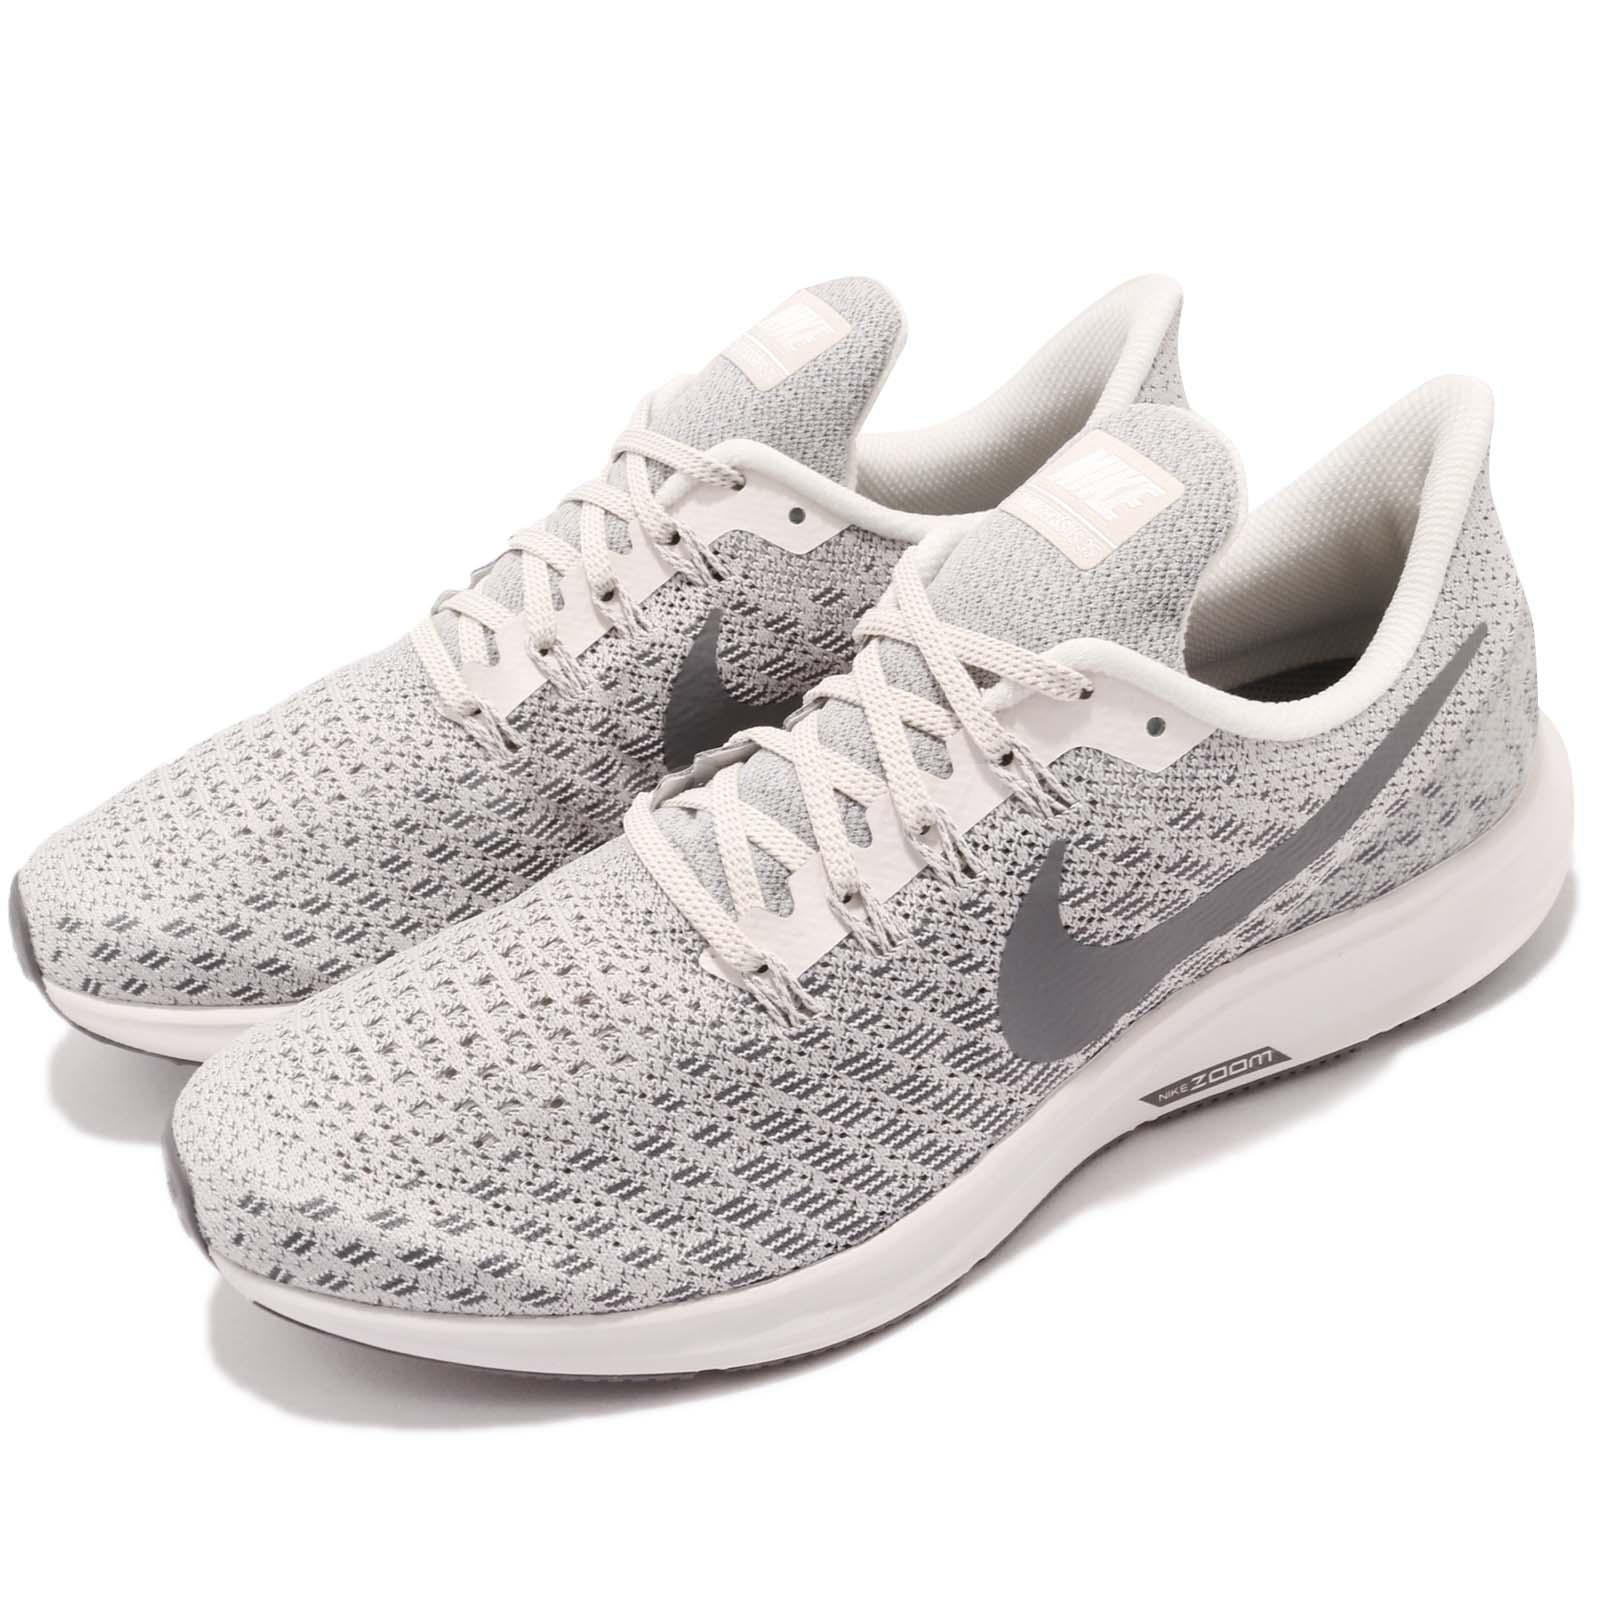 new concept 789c5 58fb4 Details about Nike Air Zoom Pegasus 35 Phantom Grey White Men Running Shoes  Sneaker 942851-004